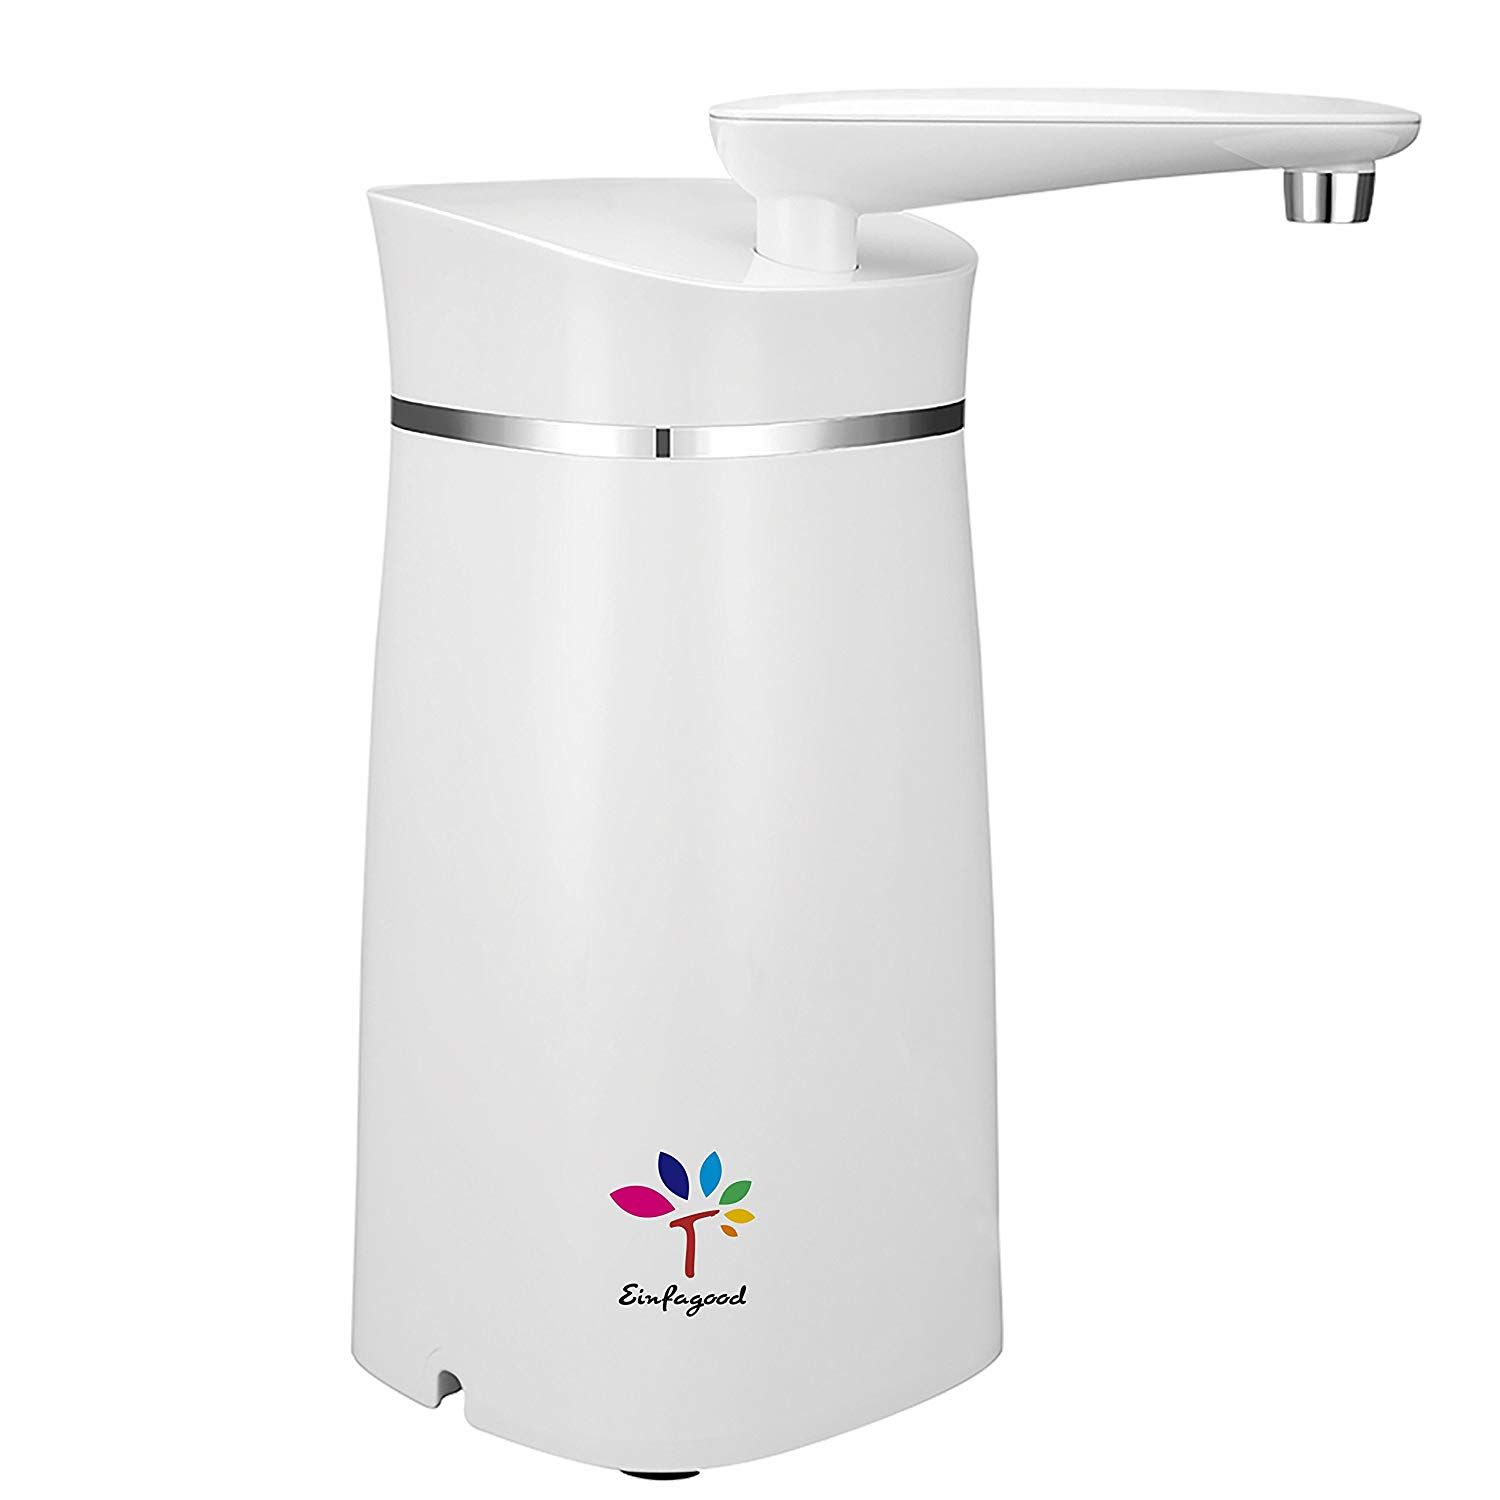 8 Best Sparkling Water Maker Plus 1 To Avoid 2020 Buyers Guide